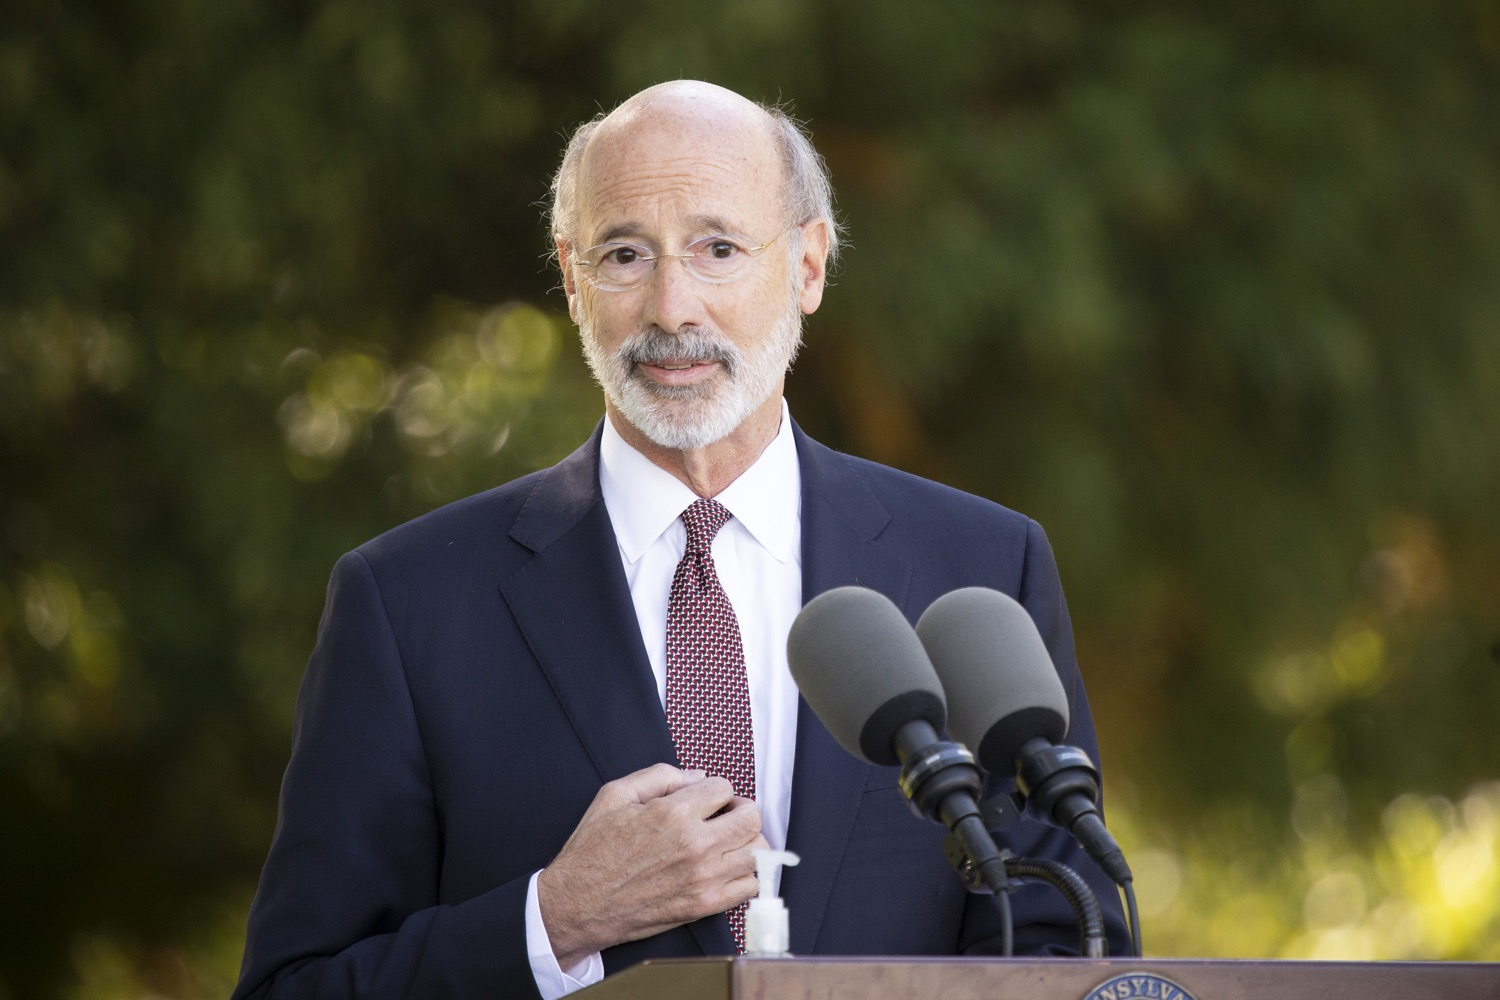 "<a href=""https://filesource.wostreaming.net/commonwealthofpa/photo/18321_gov_aca_dz_009.jpg"" target=""_blank"">⇣ Download Photo<br></a>Pennsylvania Governor Tom Wolf speaking to the press.  As the number of positive COVID-19 cases rise in Pennsylvania and as we enter flu season, protecting the Affordable Care Act (ACA) and ensuring that all Pennsylvanians have access to health coverage are more important than ever, Governor Tom Wolf said today in Chester County. The governor was joined by local elected officials and representatives from local health care organizations. Landenberg, PA  October 15, 2020"